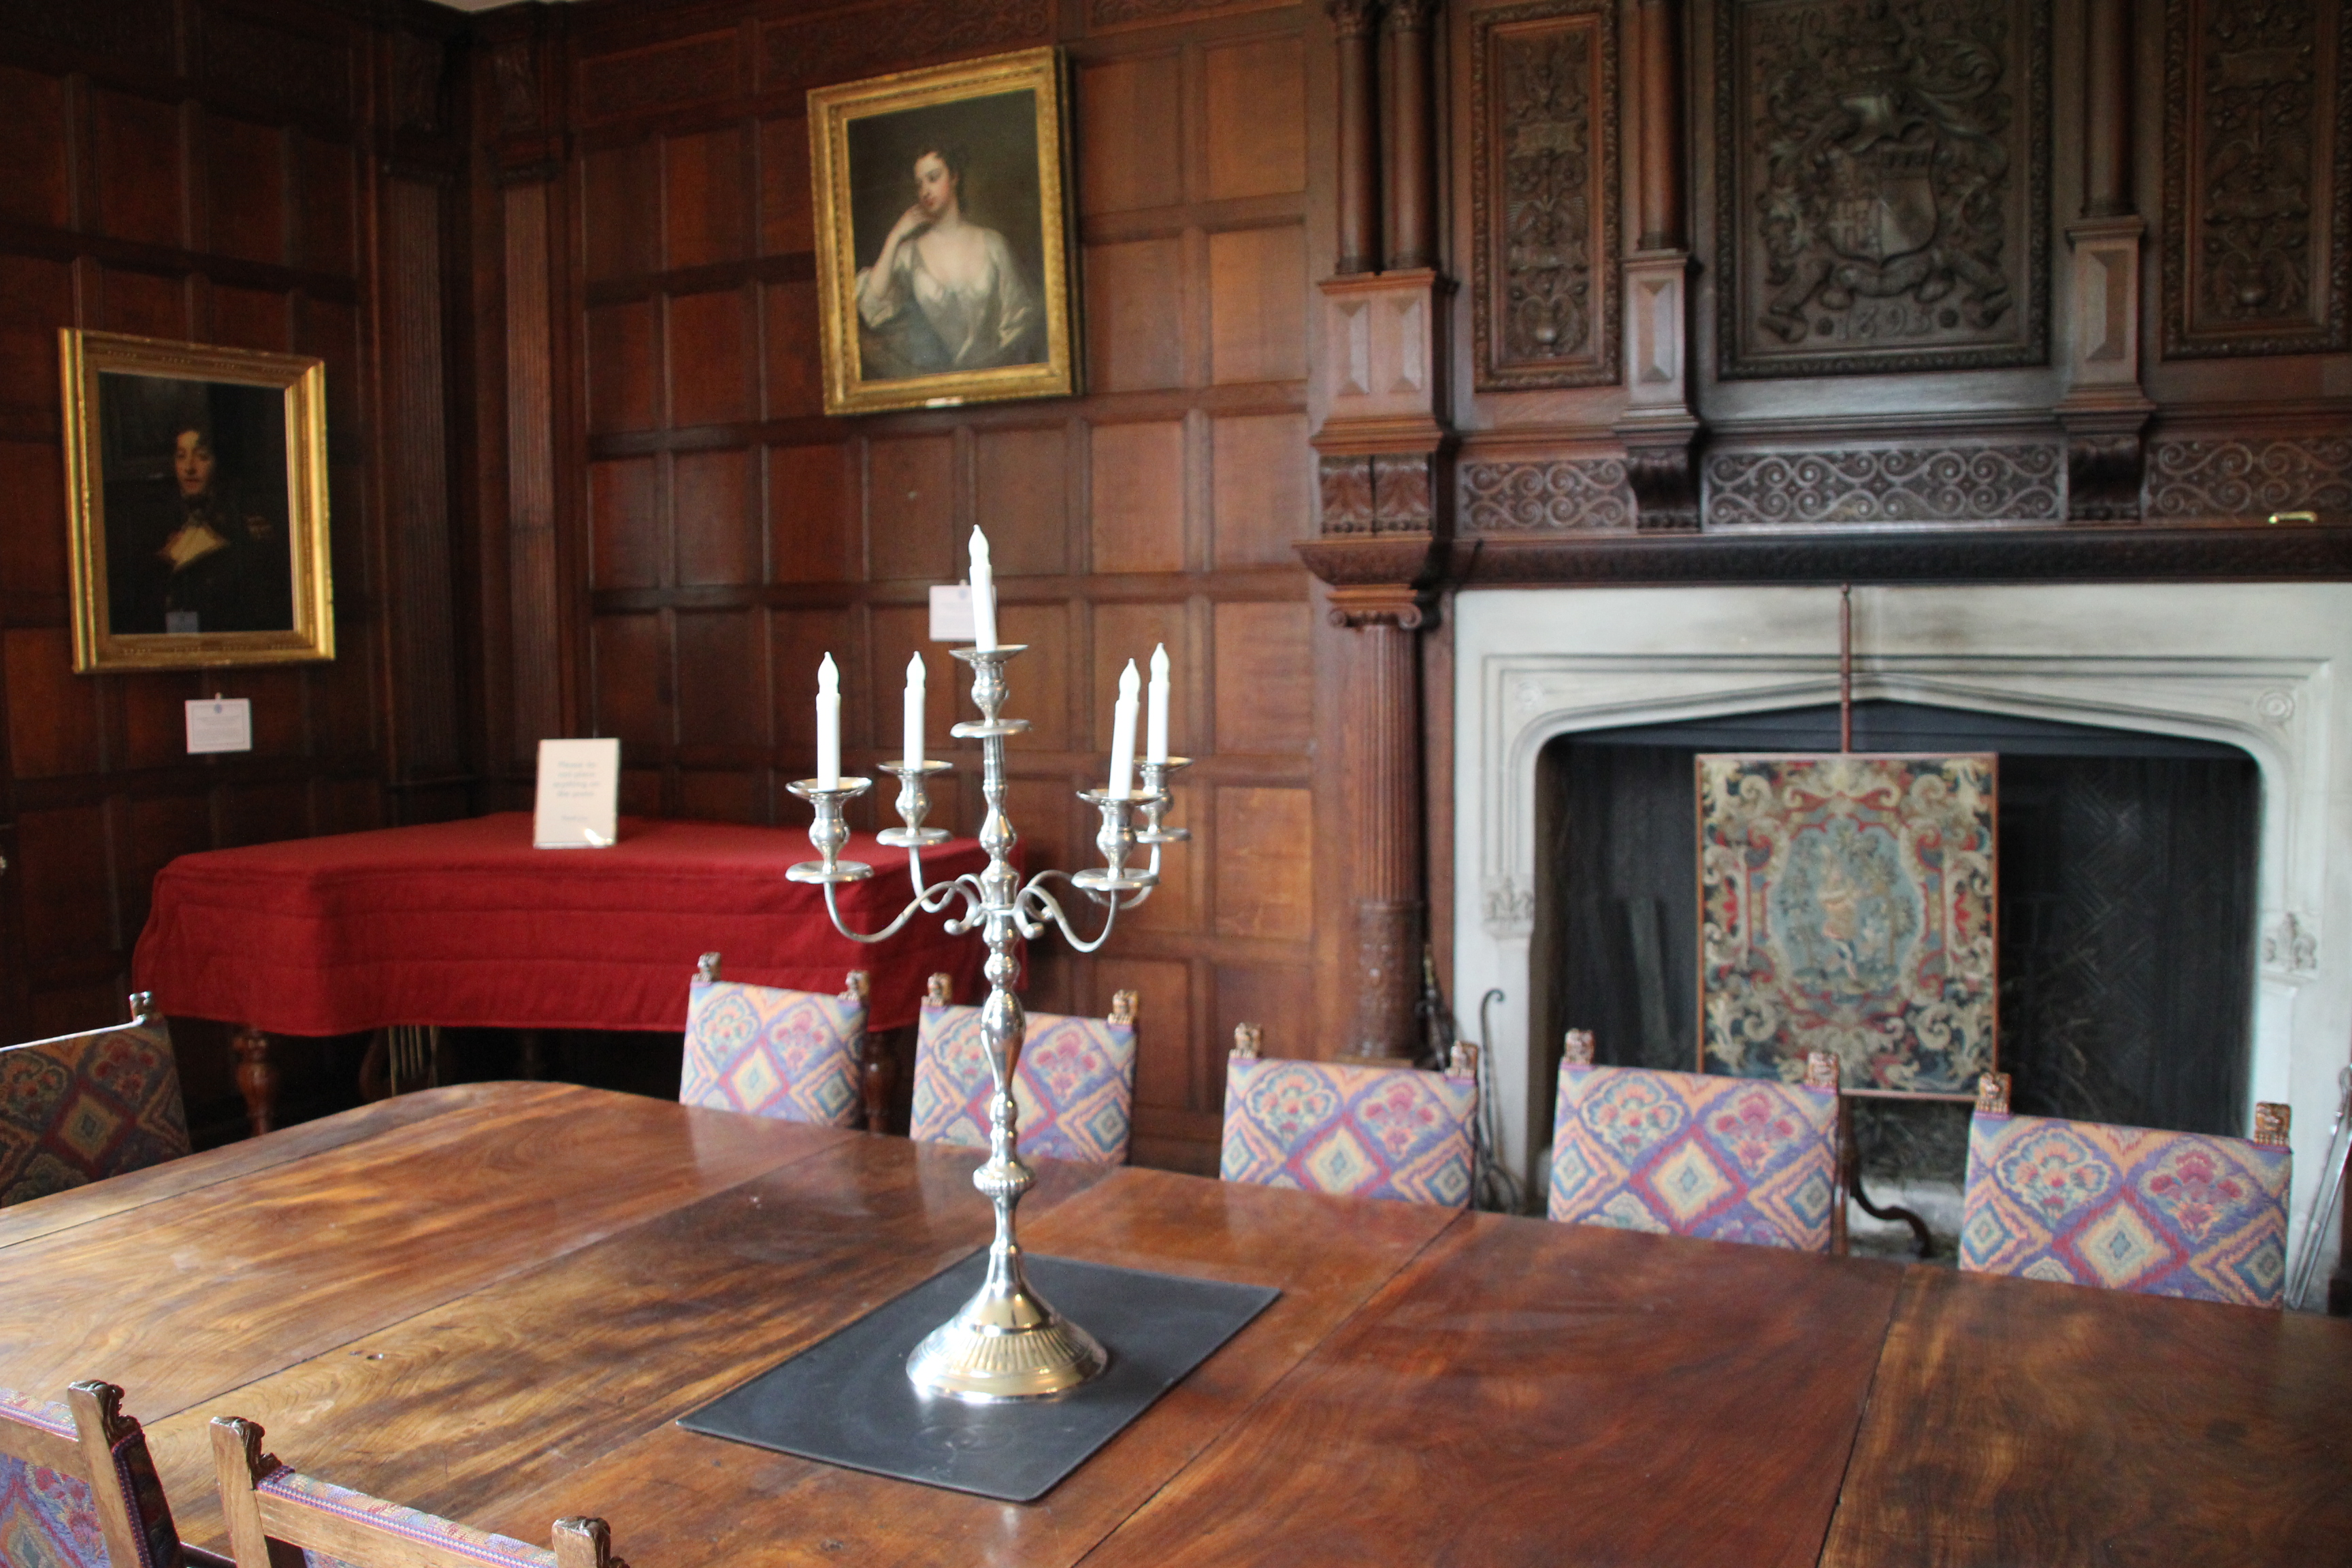 Chawton House interior Wibke Carter